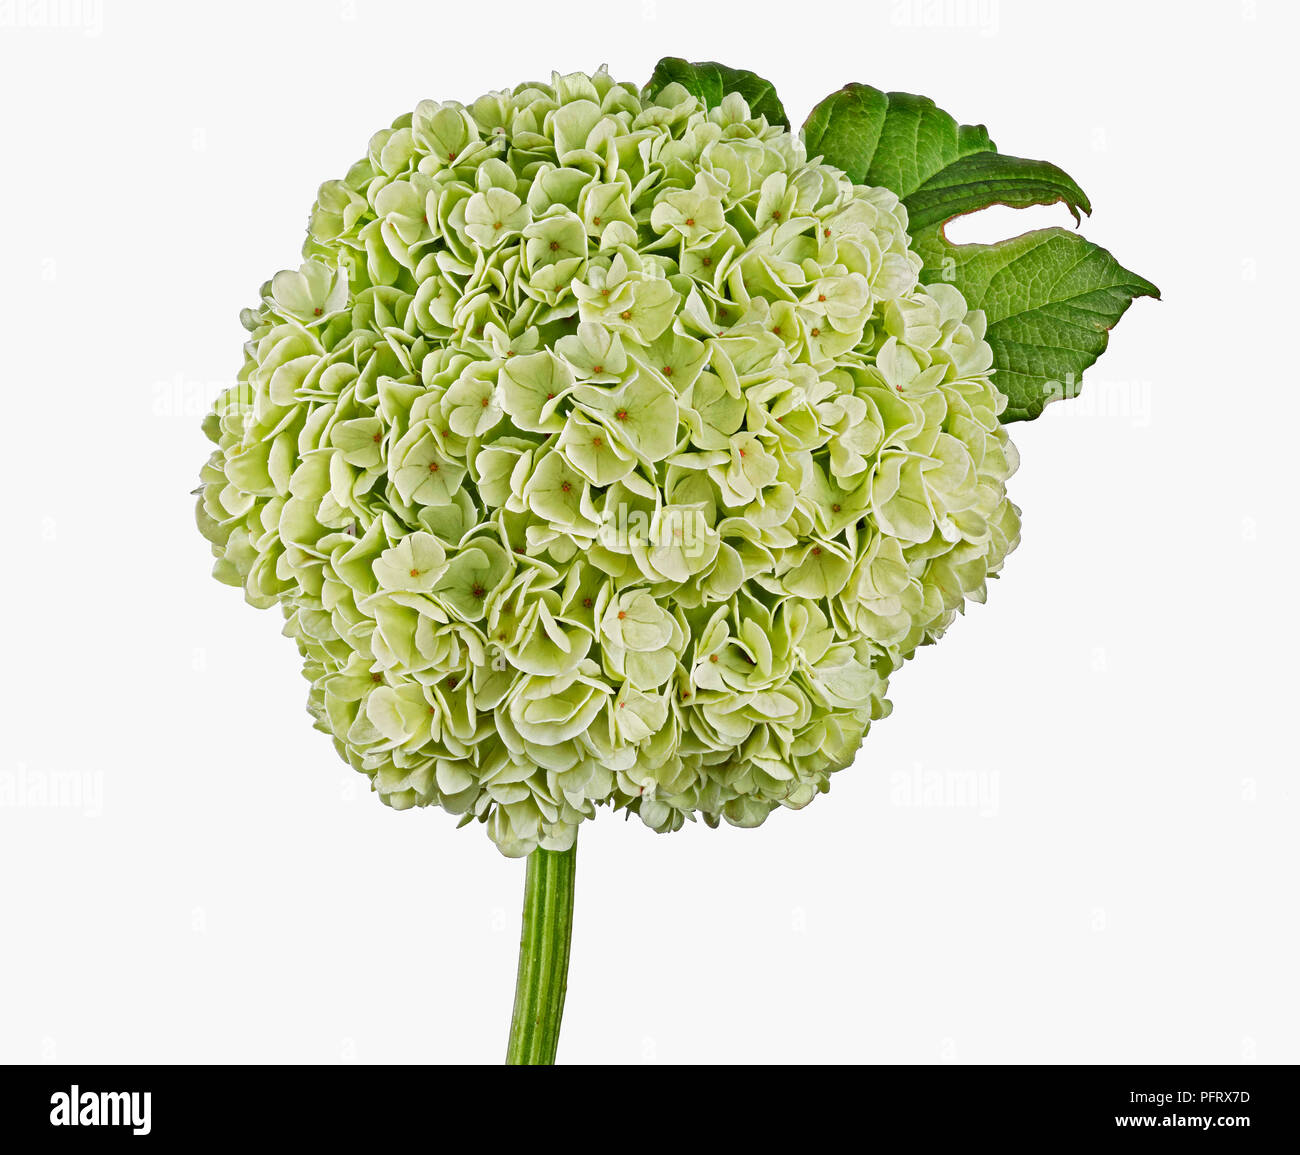 Guelder rose - Stock Image